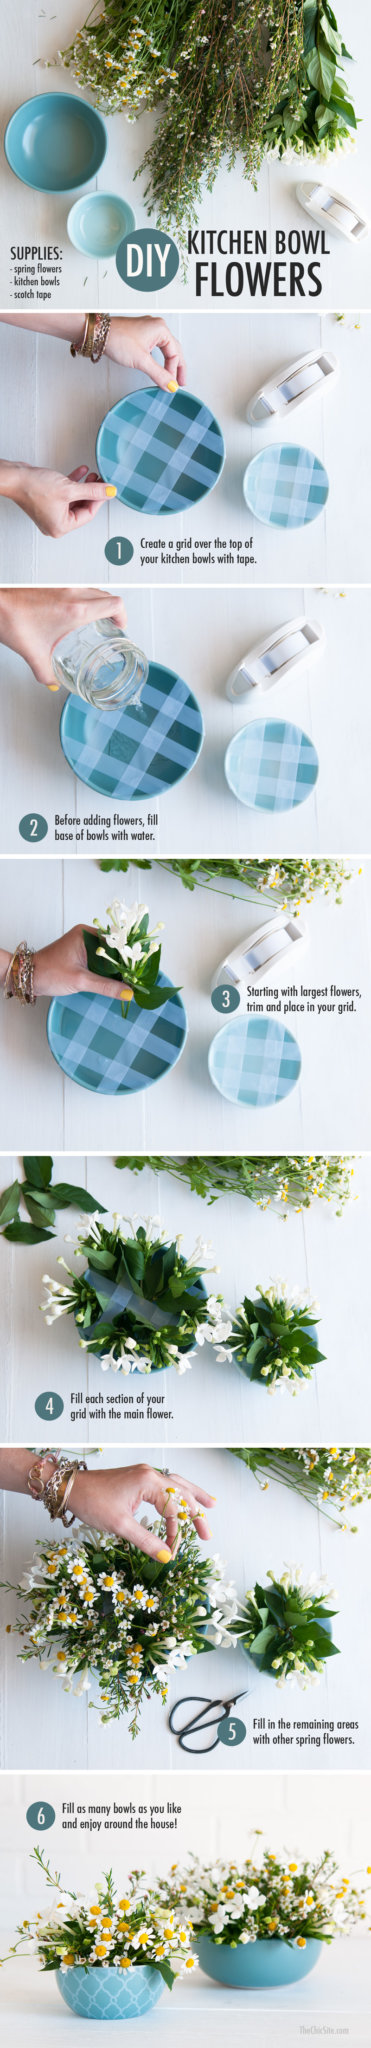 How to Arrange Flowers in a Bowl